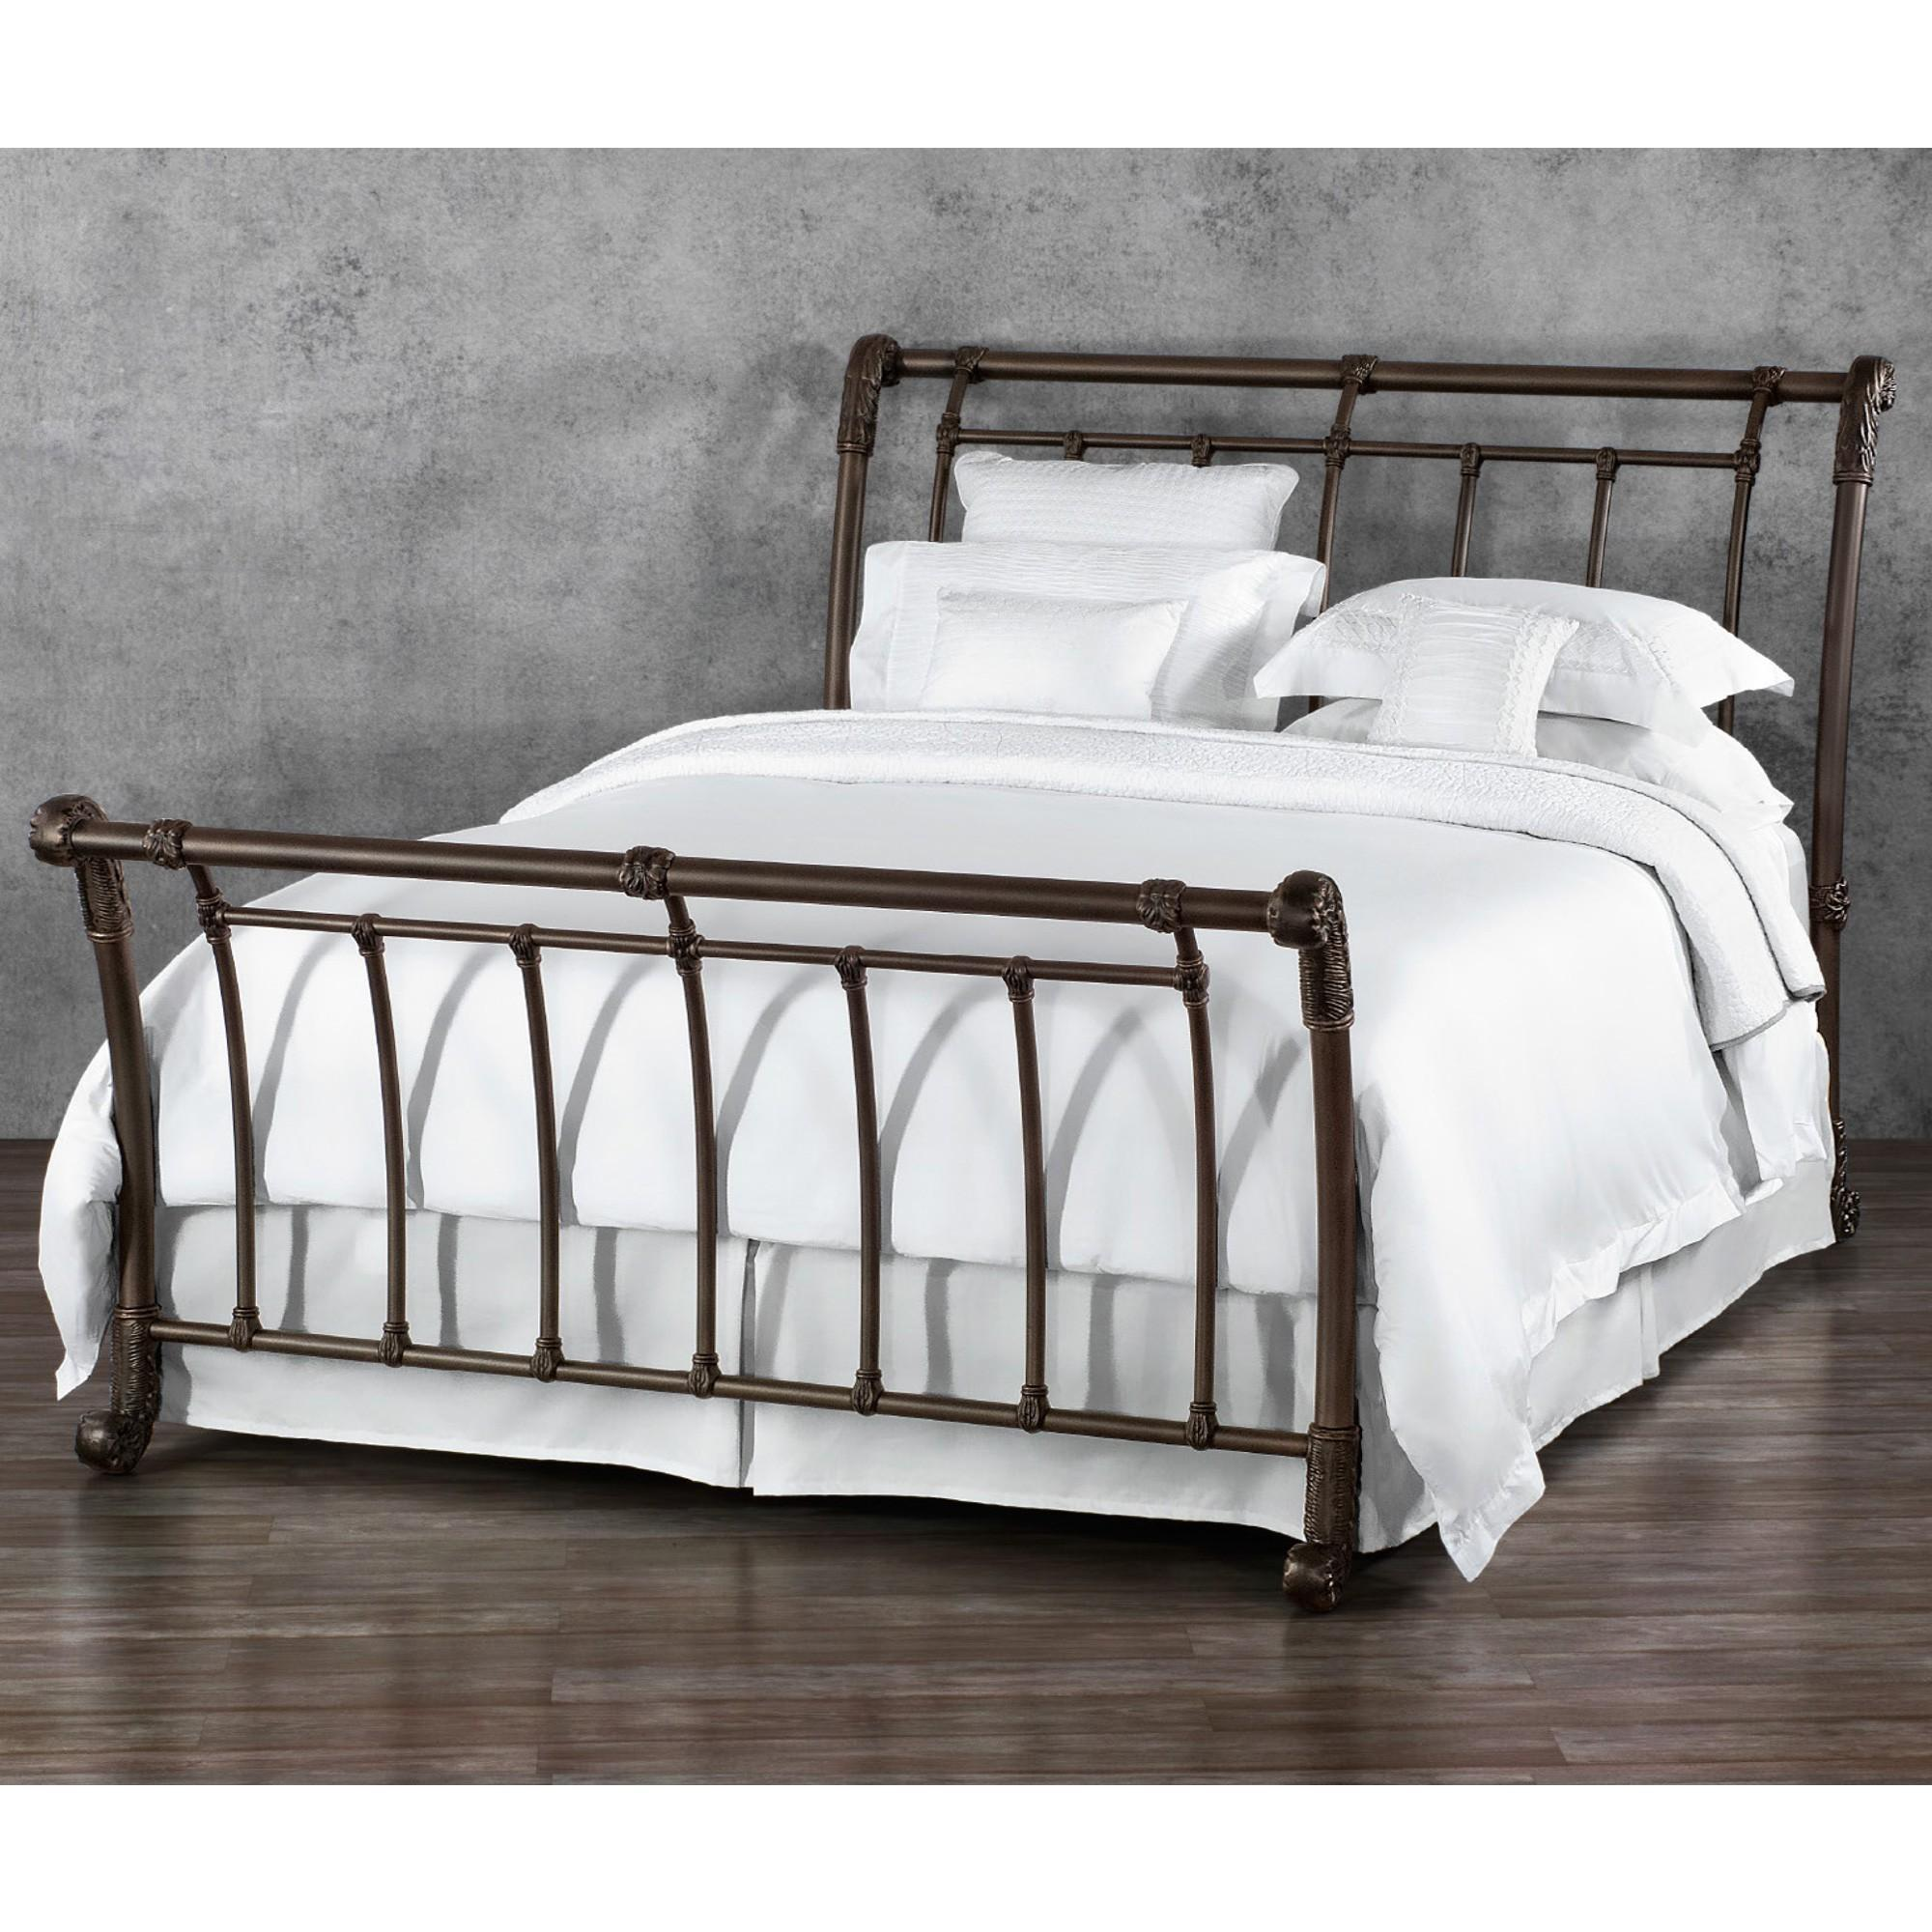 Sturdy Iron Headboard Footboard Trends Metal